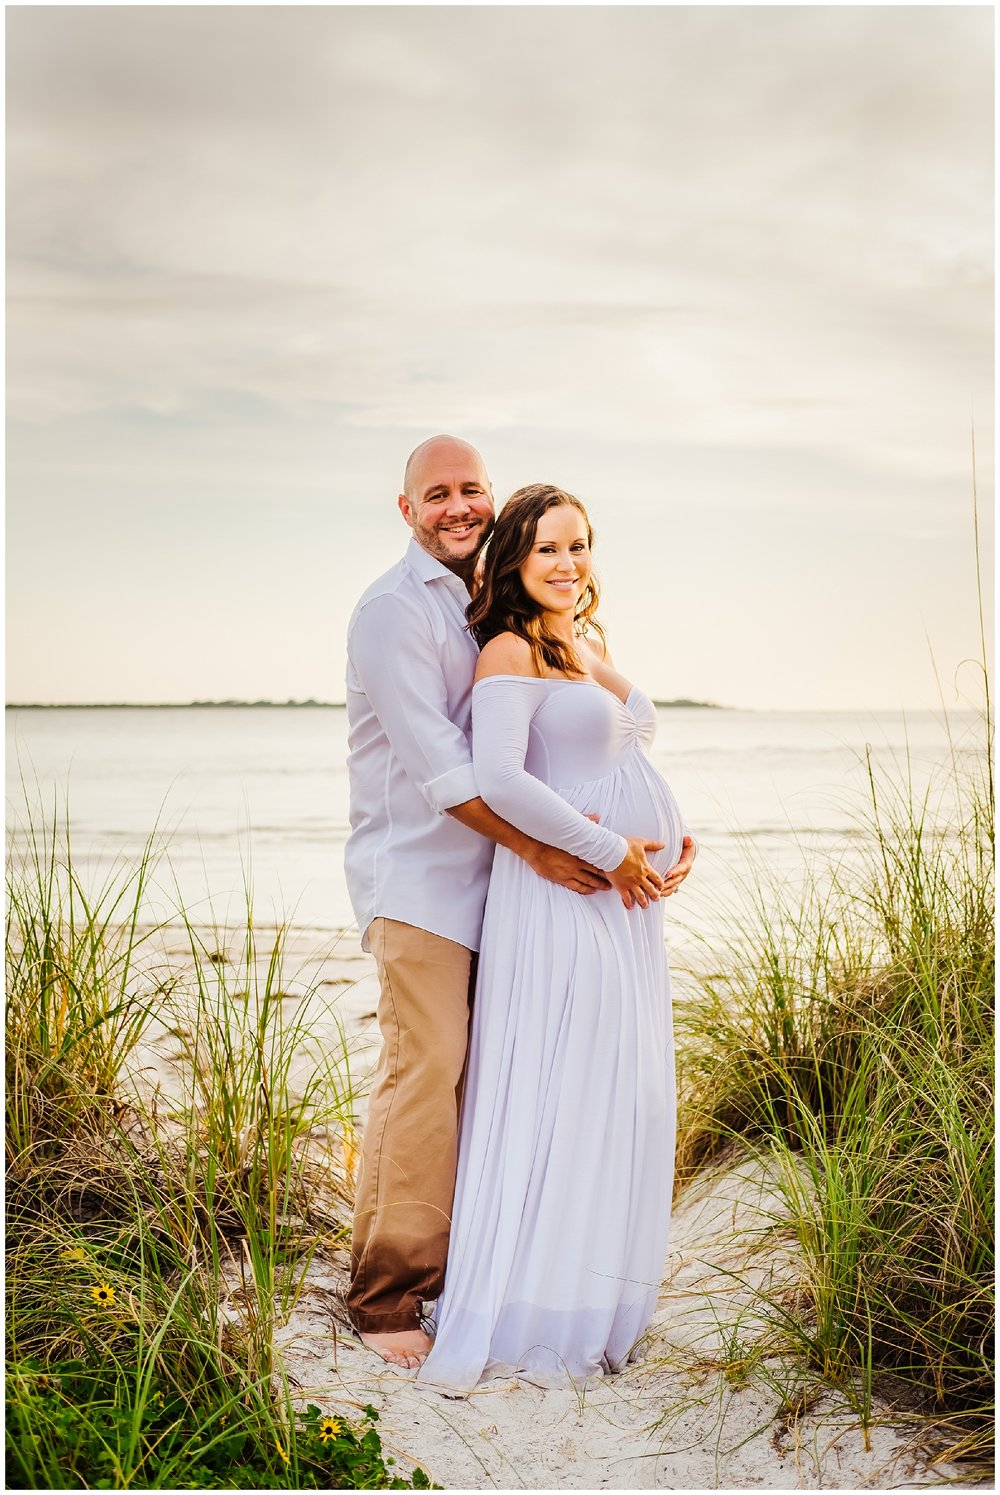 fort-desoto-maternity-photos-florida-beach-sunset_0022.jpg